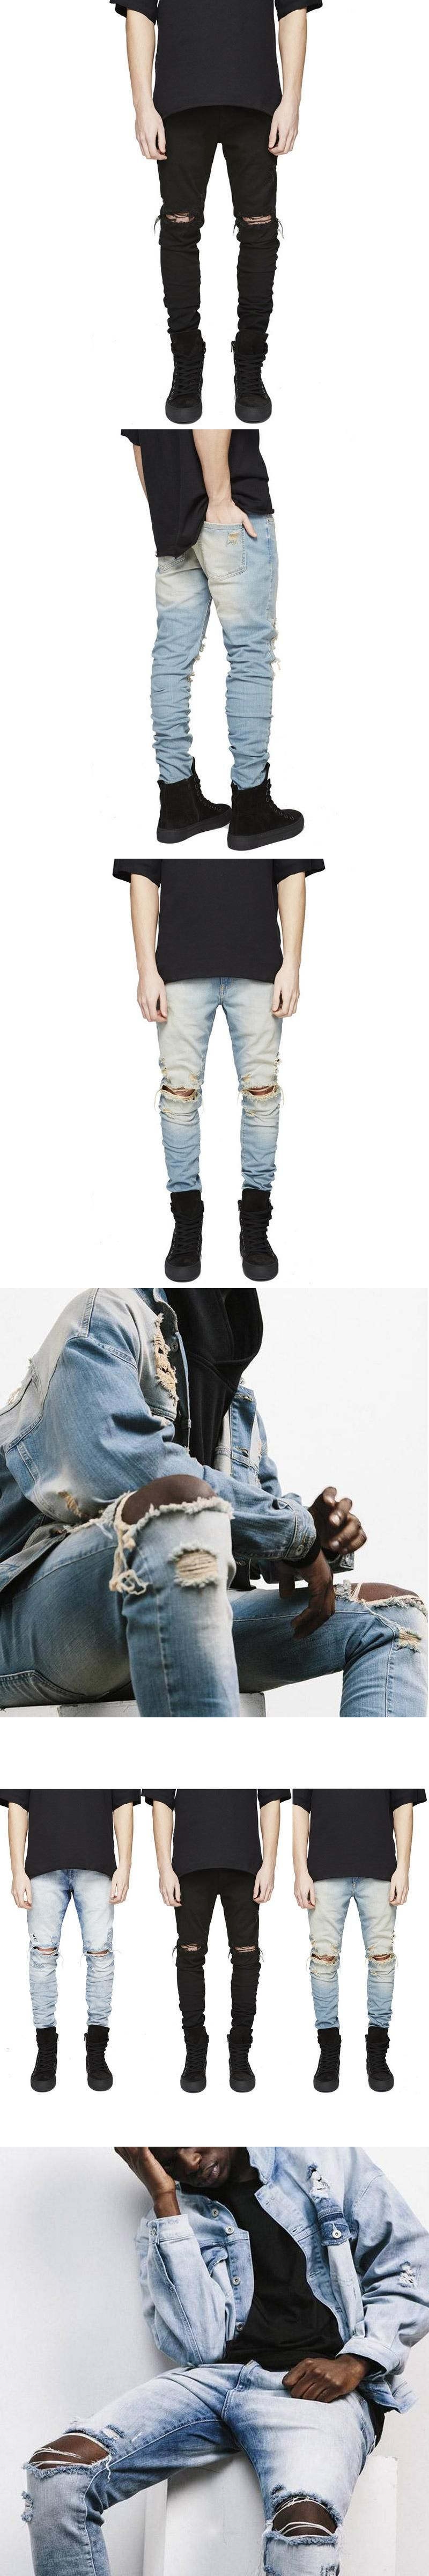 2017 New Mens Hip Hop Ripped Skinny Black Jeans With Holes the Knee Distressed Denim Joggers fear of god Skinny Pants m61